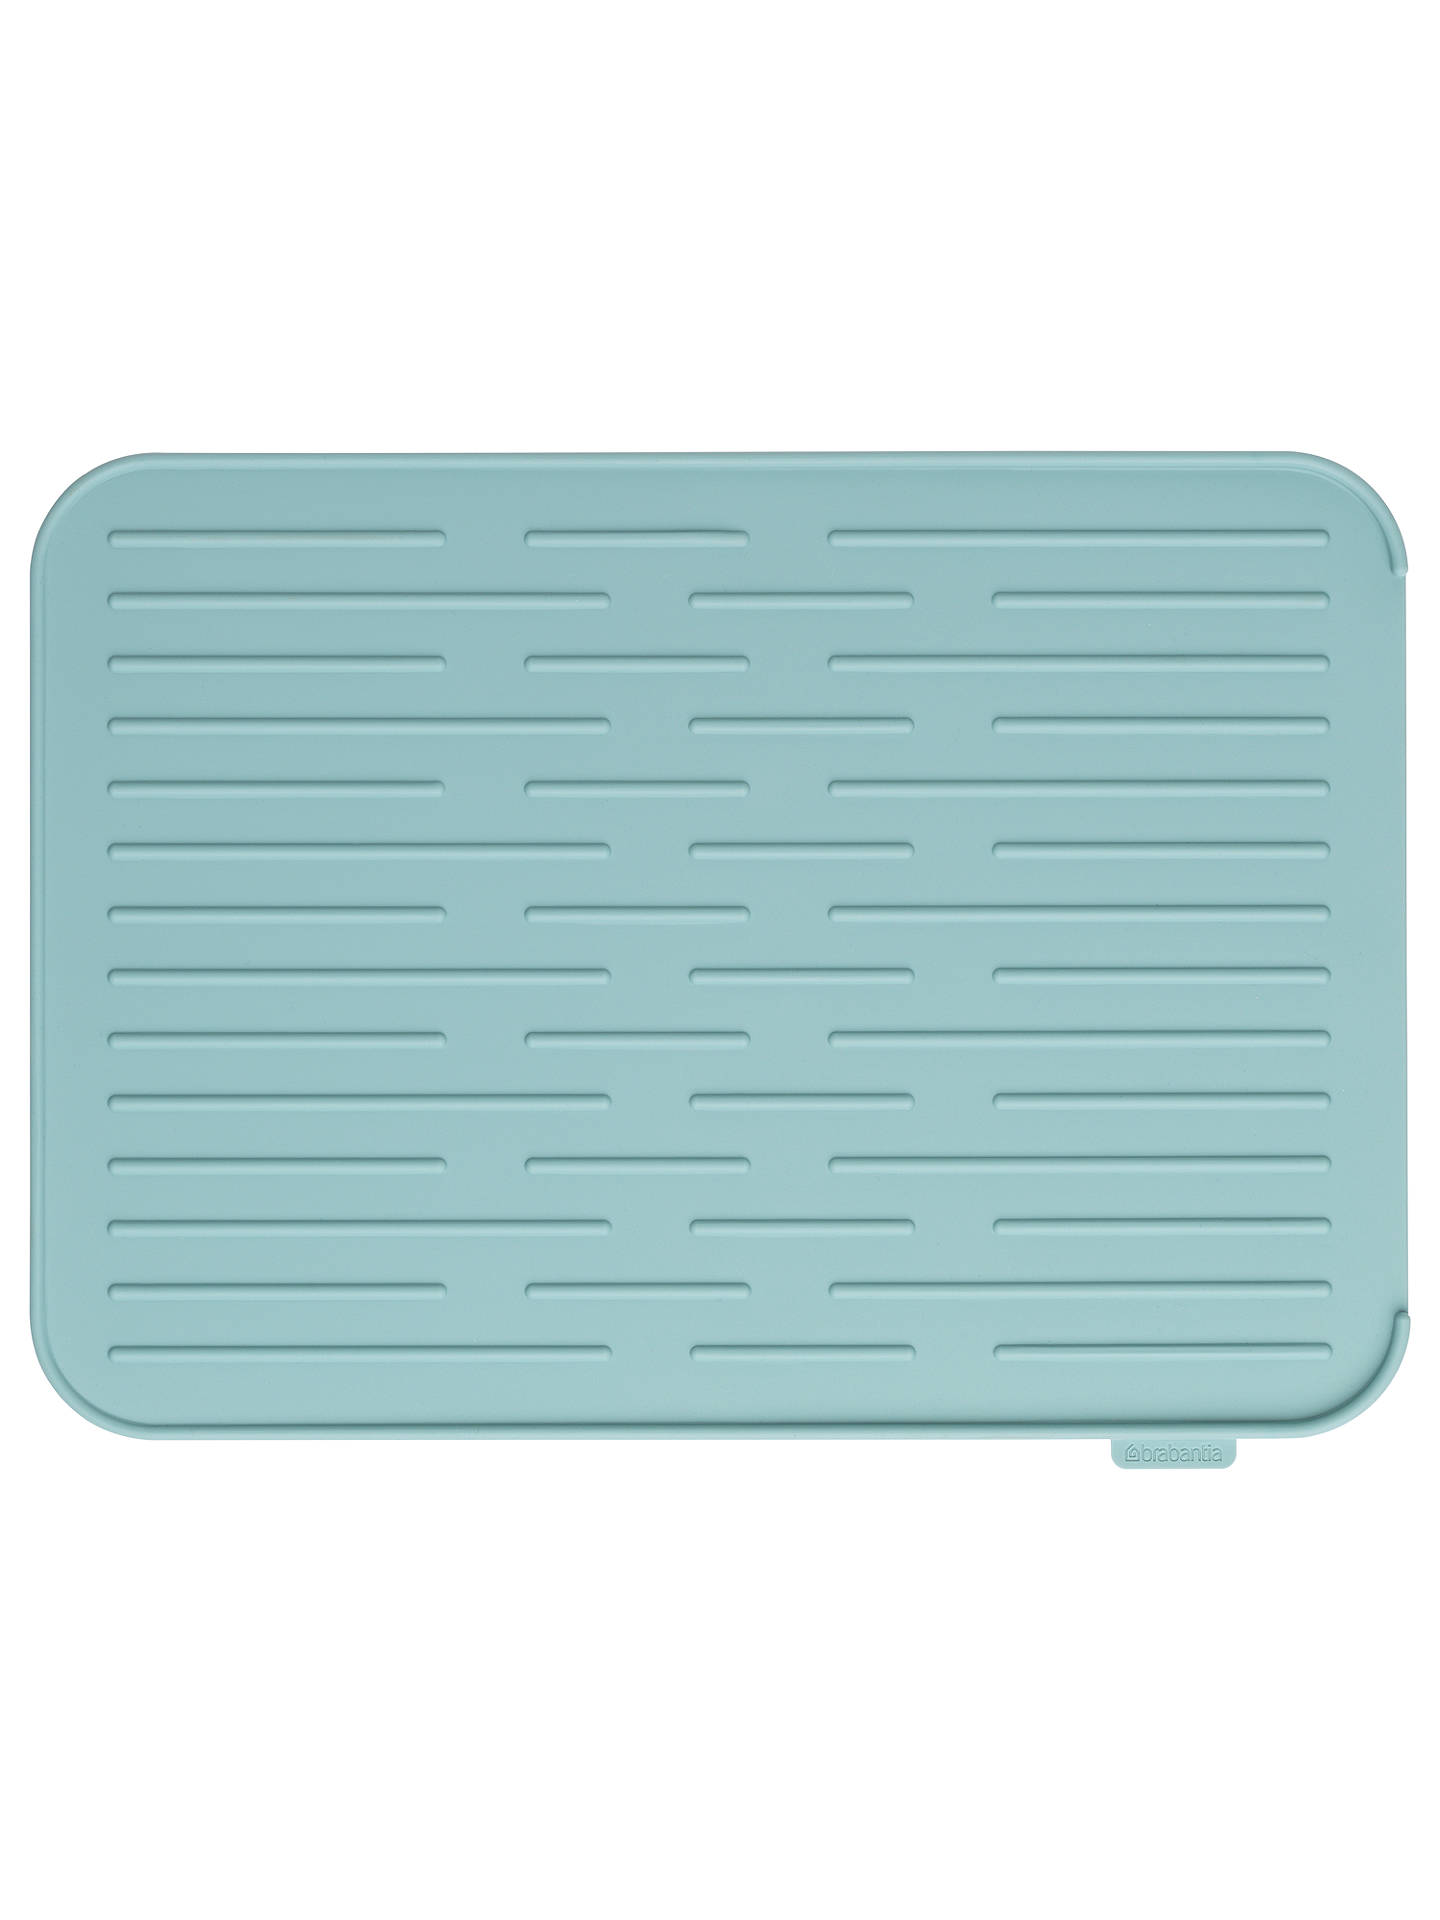 BuyBrabantia Silicone Dish Draining Mat, Mint Online at johnlewis.com